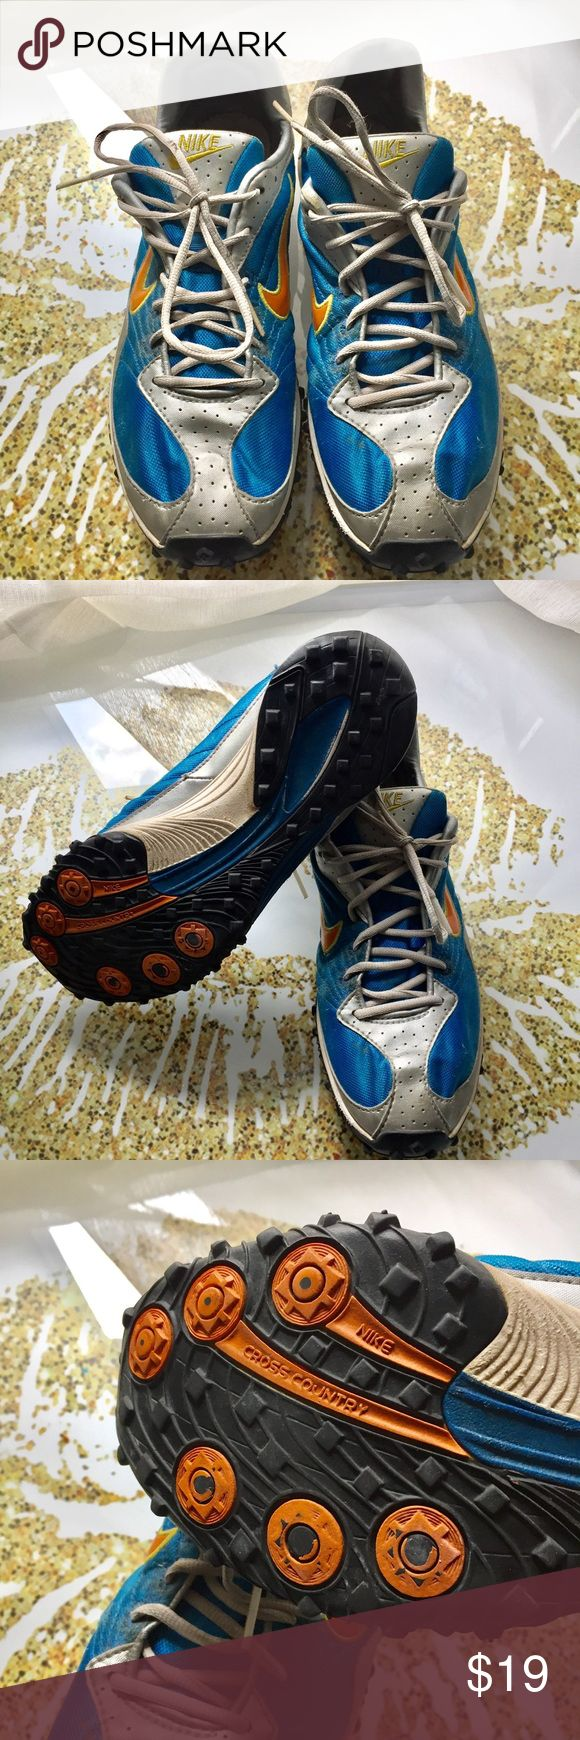 Nike Cross Country Running Shoes Great used condition x-country training shoes. These are a steal for the professional and novice runner alike. Size 10 but run small large 9.5s will work best. Nike Shoes Sneakers